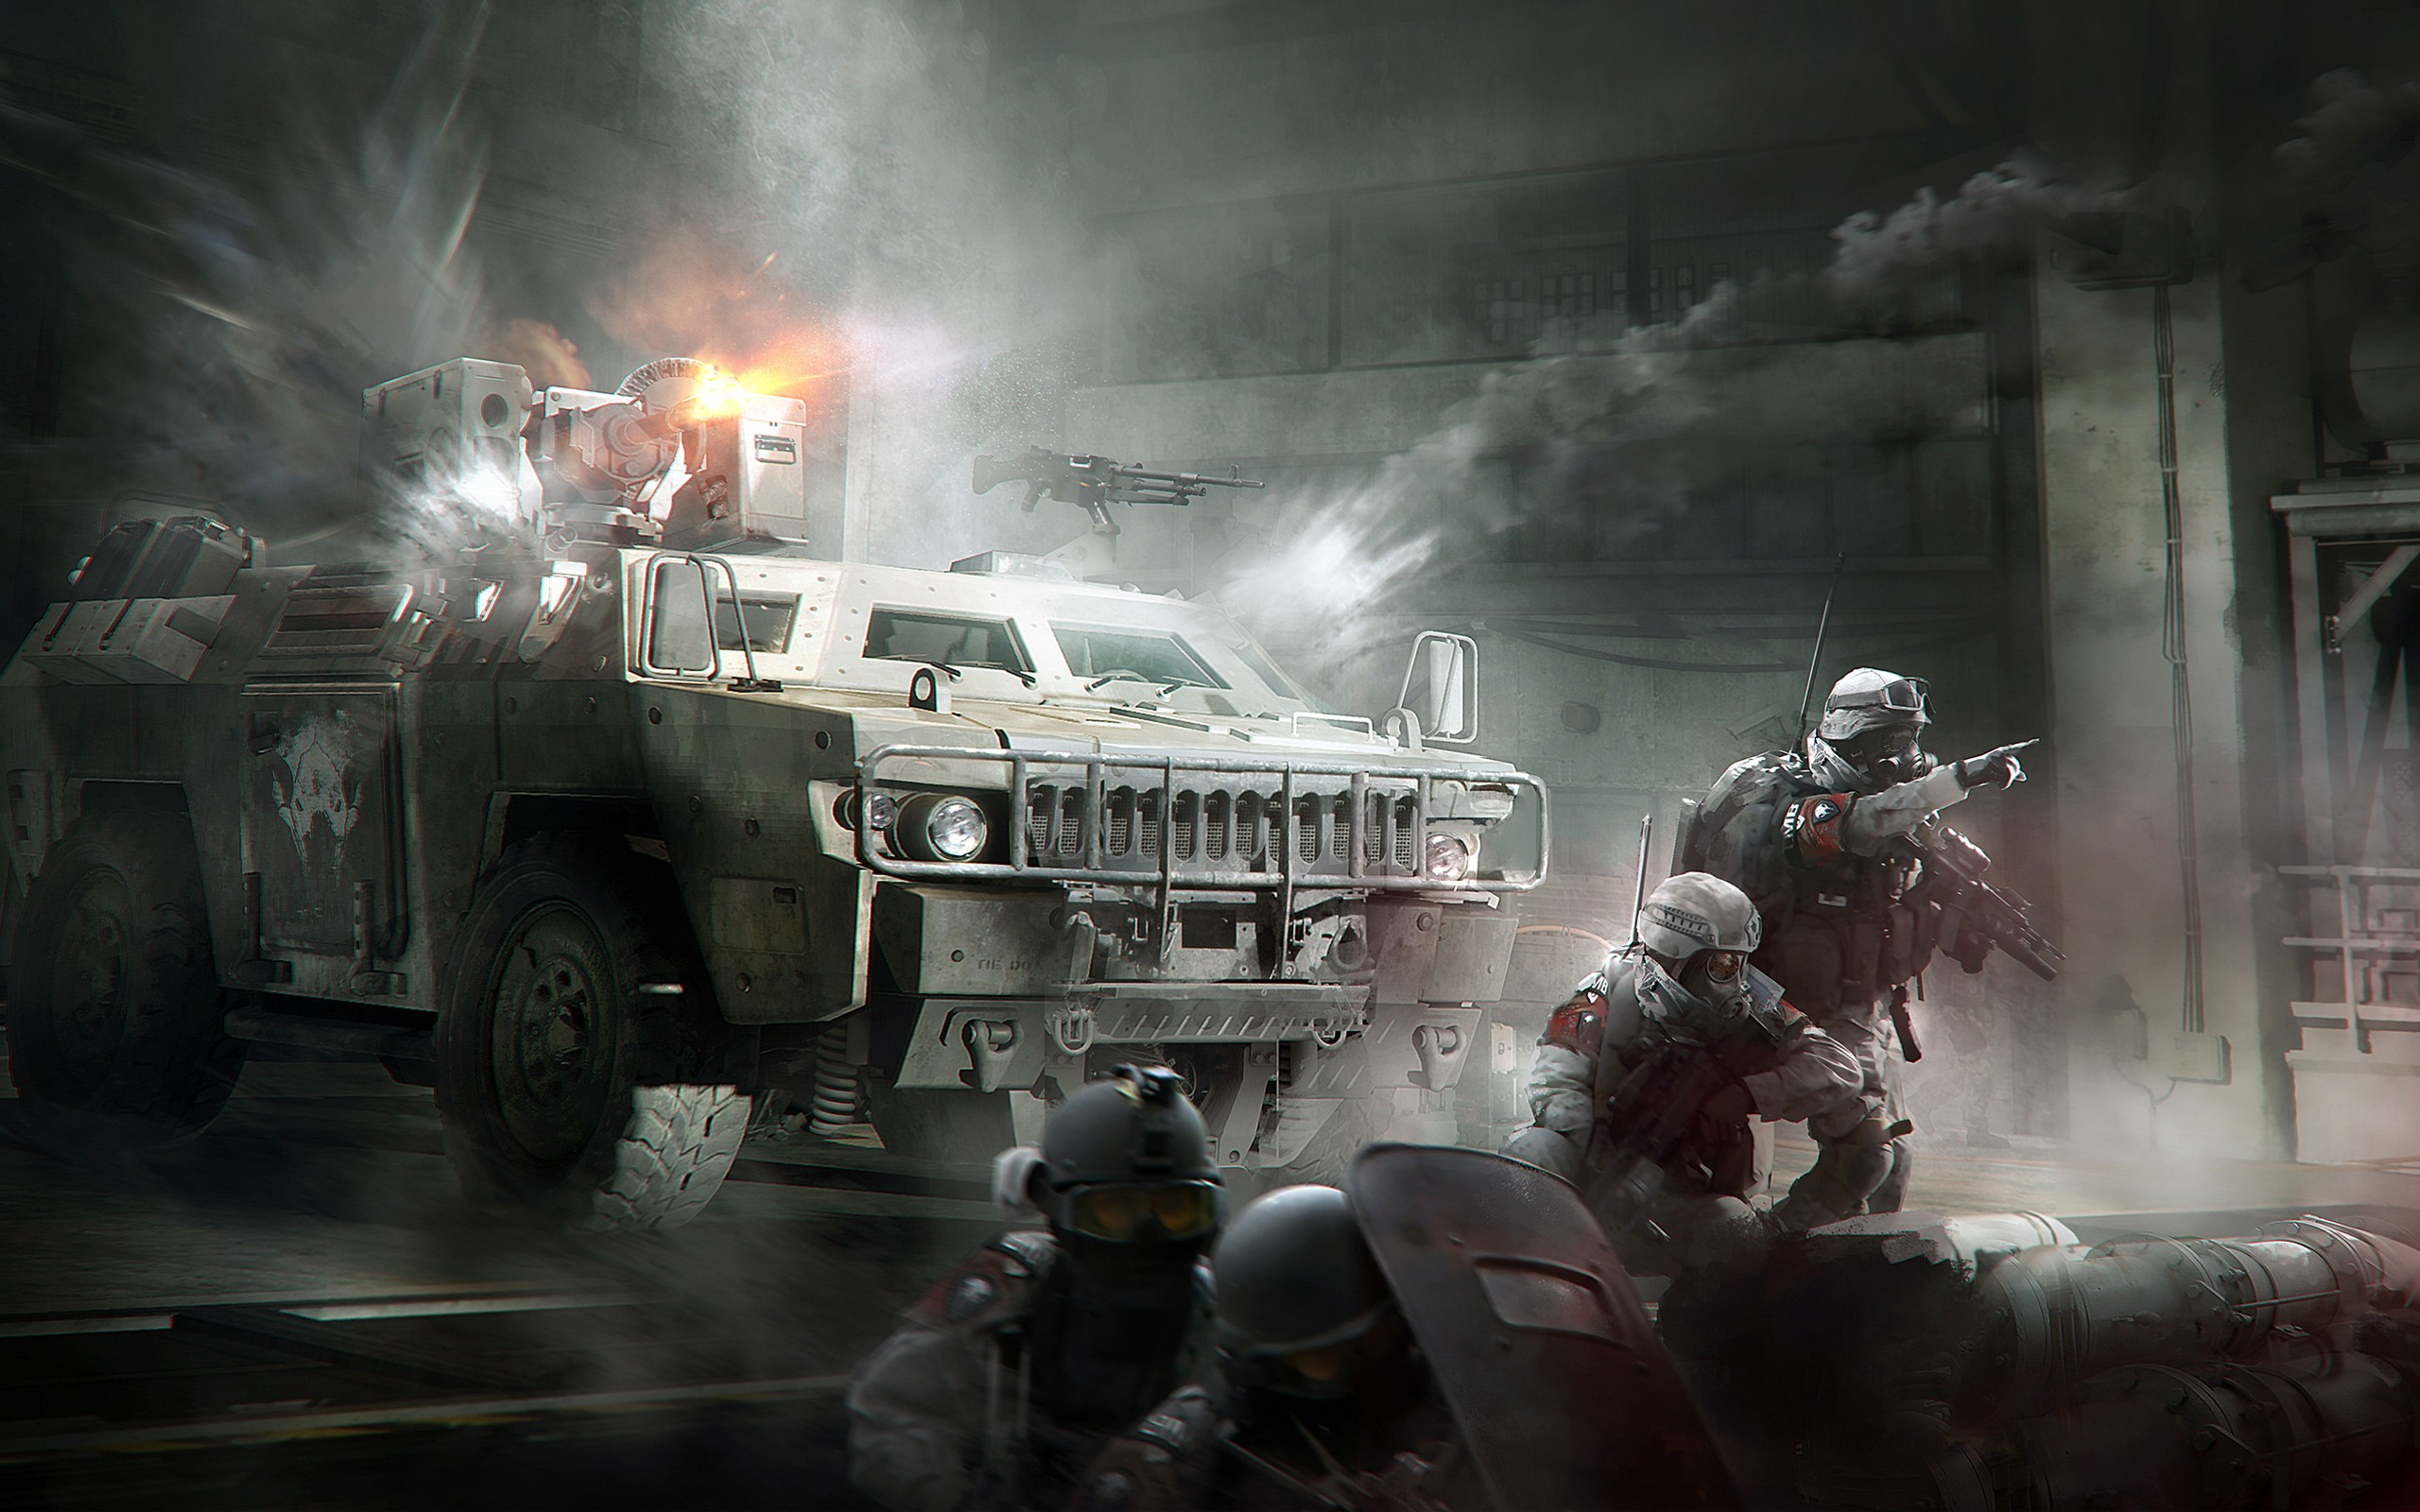 Battlefield 4 Girl Wallpaper Tom Clancys The Division Concept Artwork Wallpapers Hd